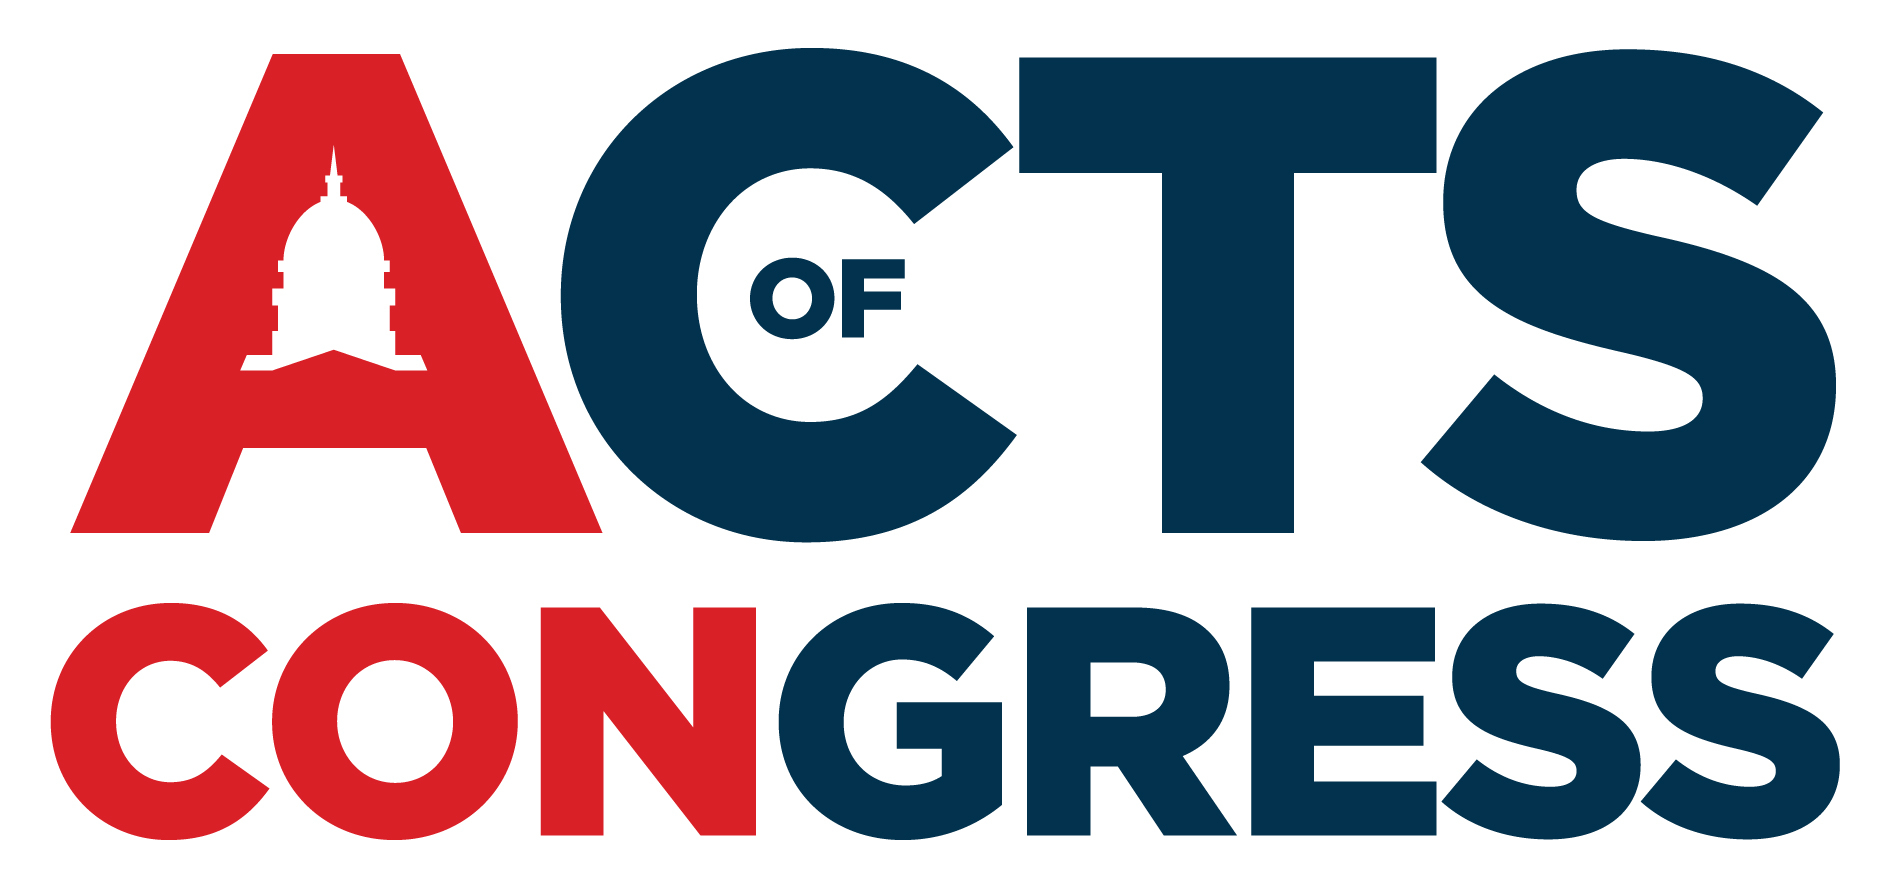 acts of congress indiegogo sincerely from everyone on the team thank you for checking this out we ll do our best to make you laugh make you angry and most of all make you proud